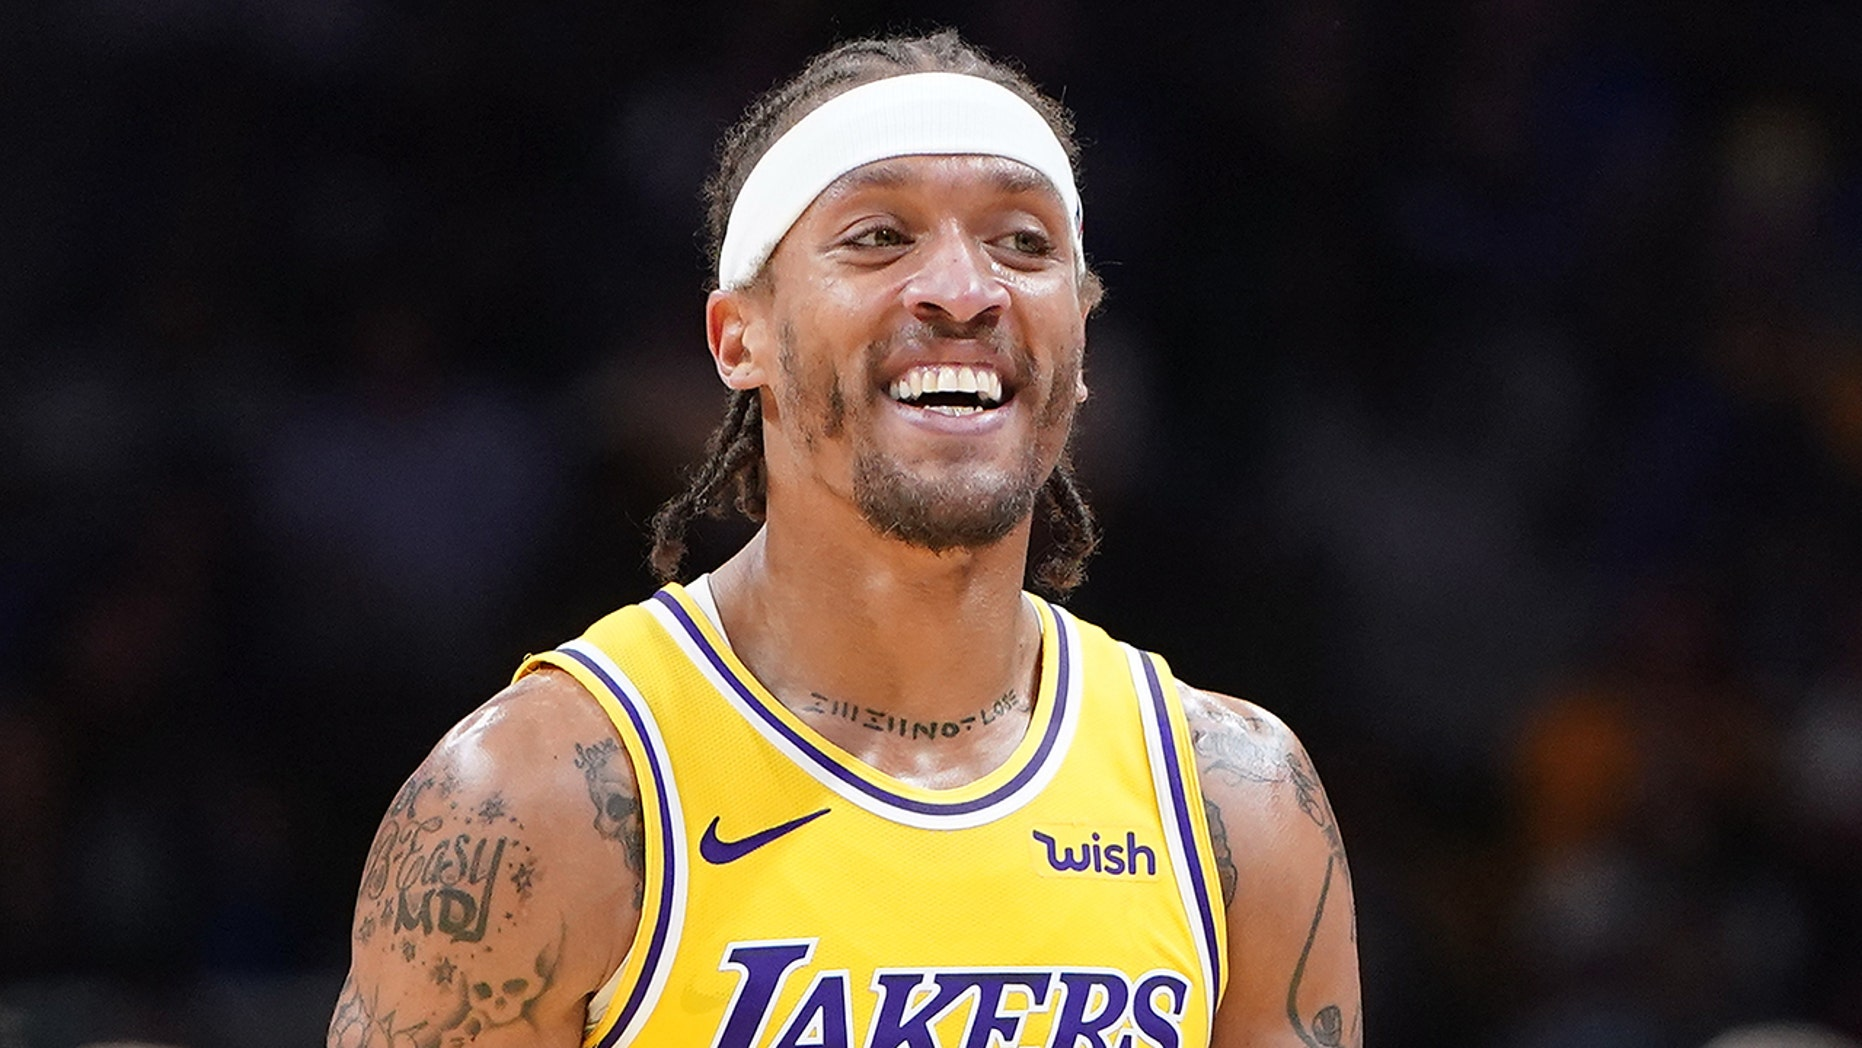 Michael Beasley attempted to enter a game Thursday with the wrong shorts on.